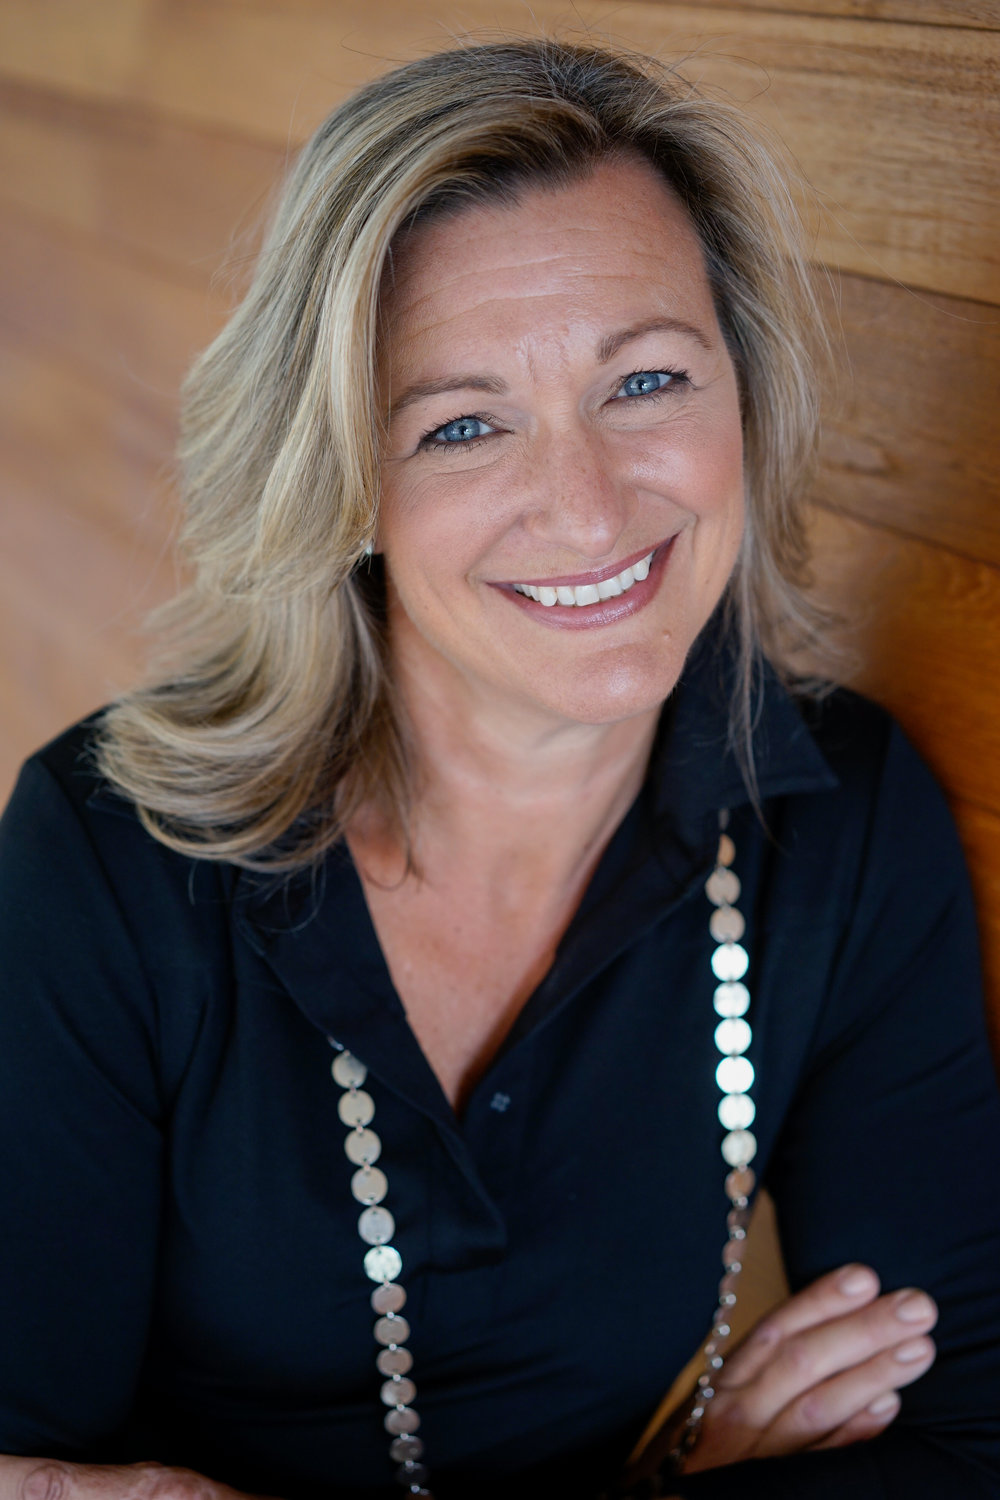 Kathy Bogle - Owner, Bogle Design Group